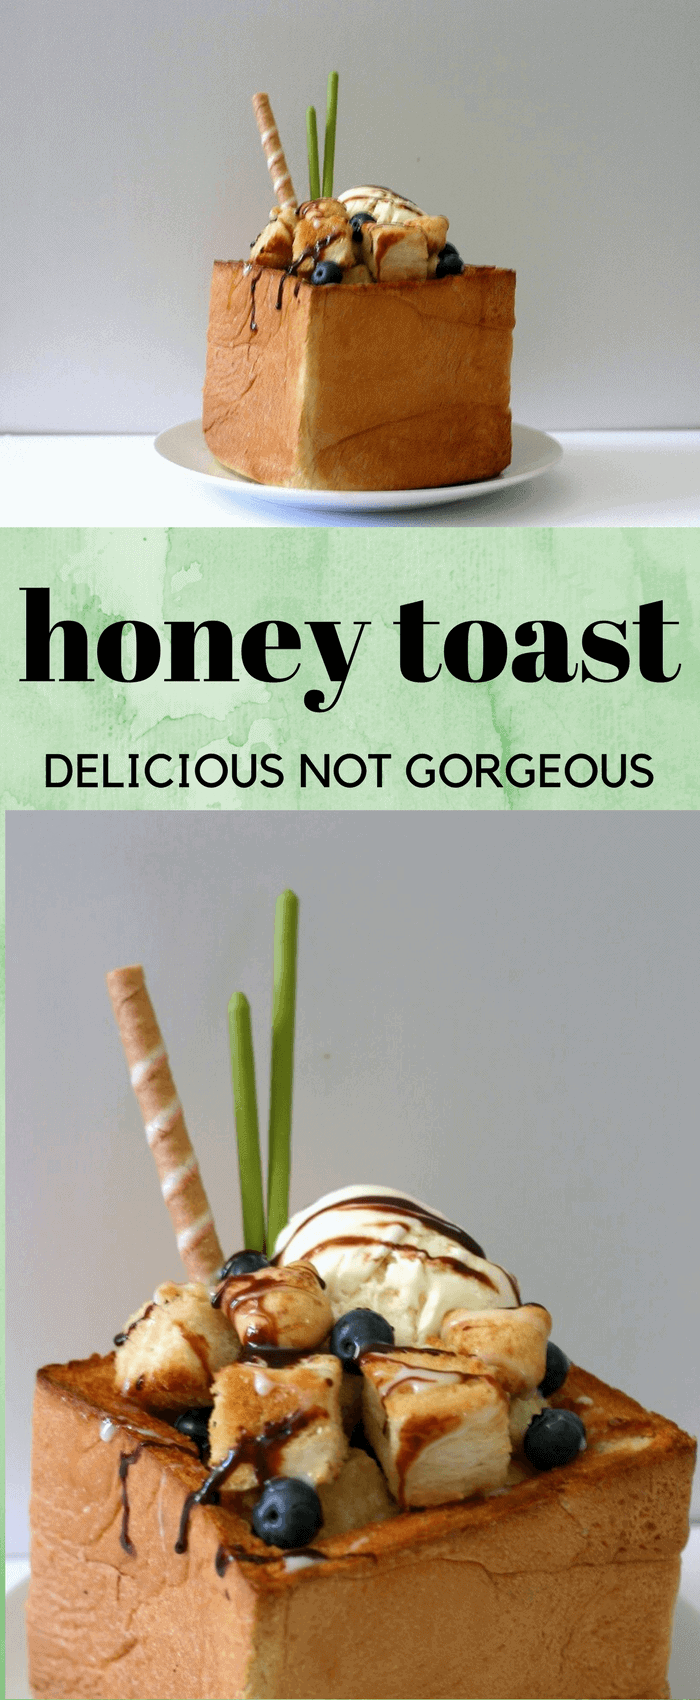 Honey toast is a buttery, honeyed dessert that takes breakfast toast and makes it dessert worthy. #honey #toast #icecream #dessert